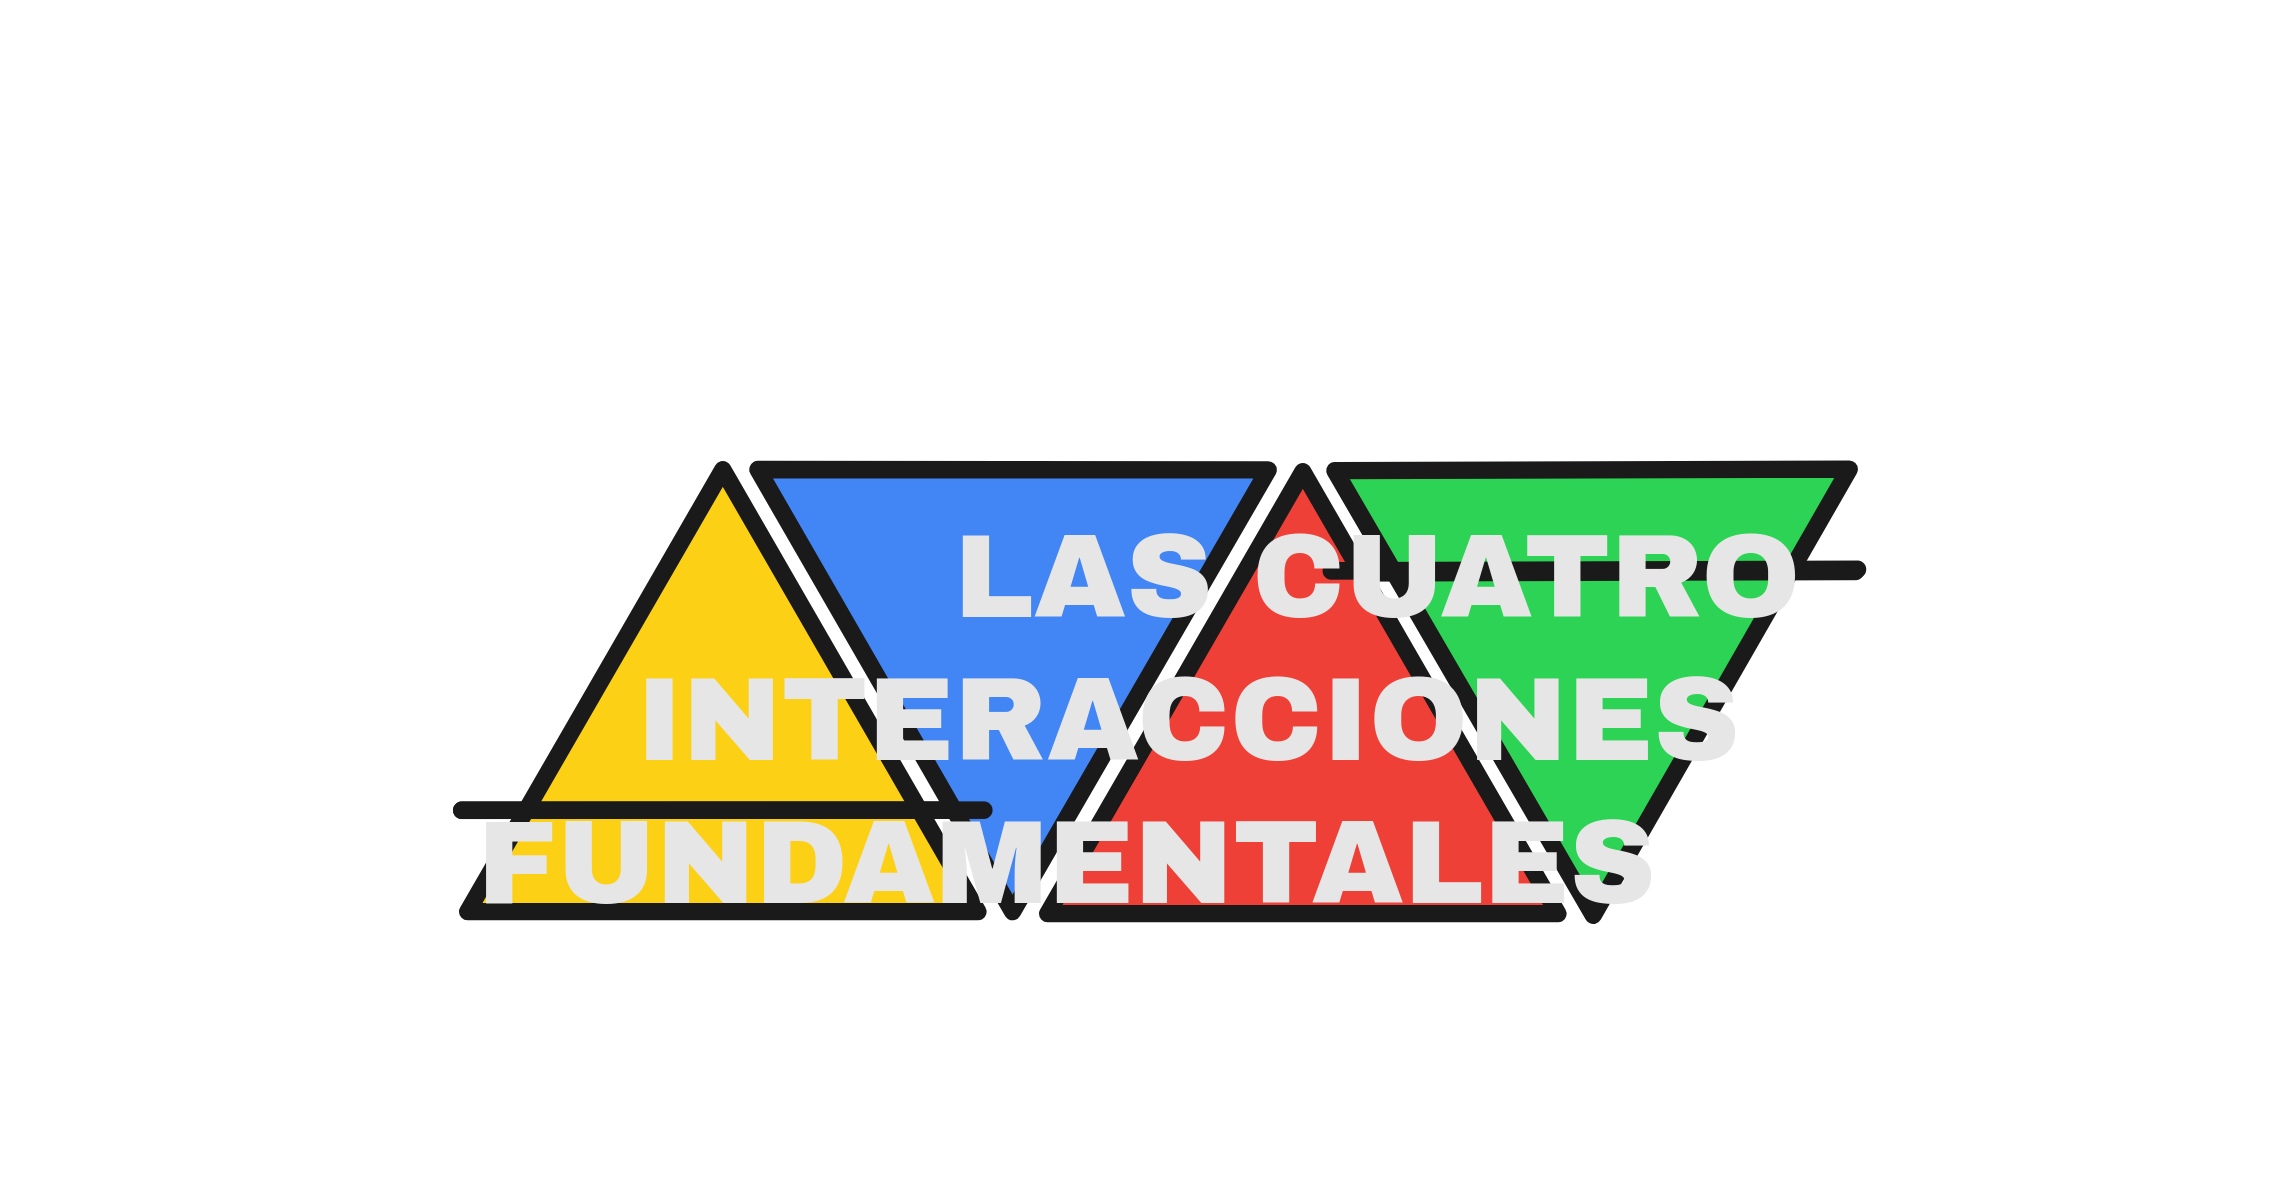 interacciones fundamentales